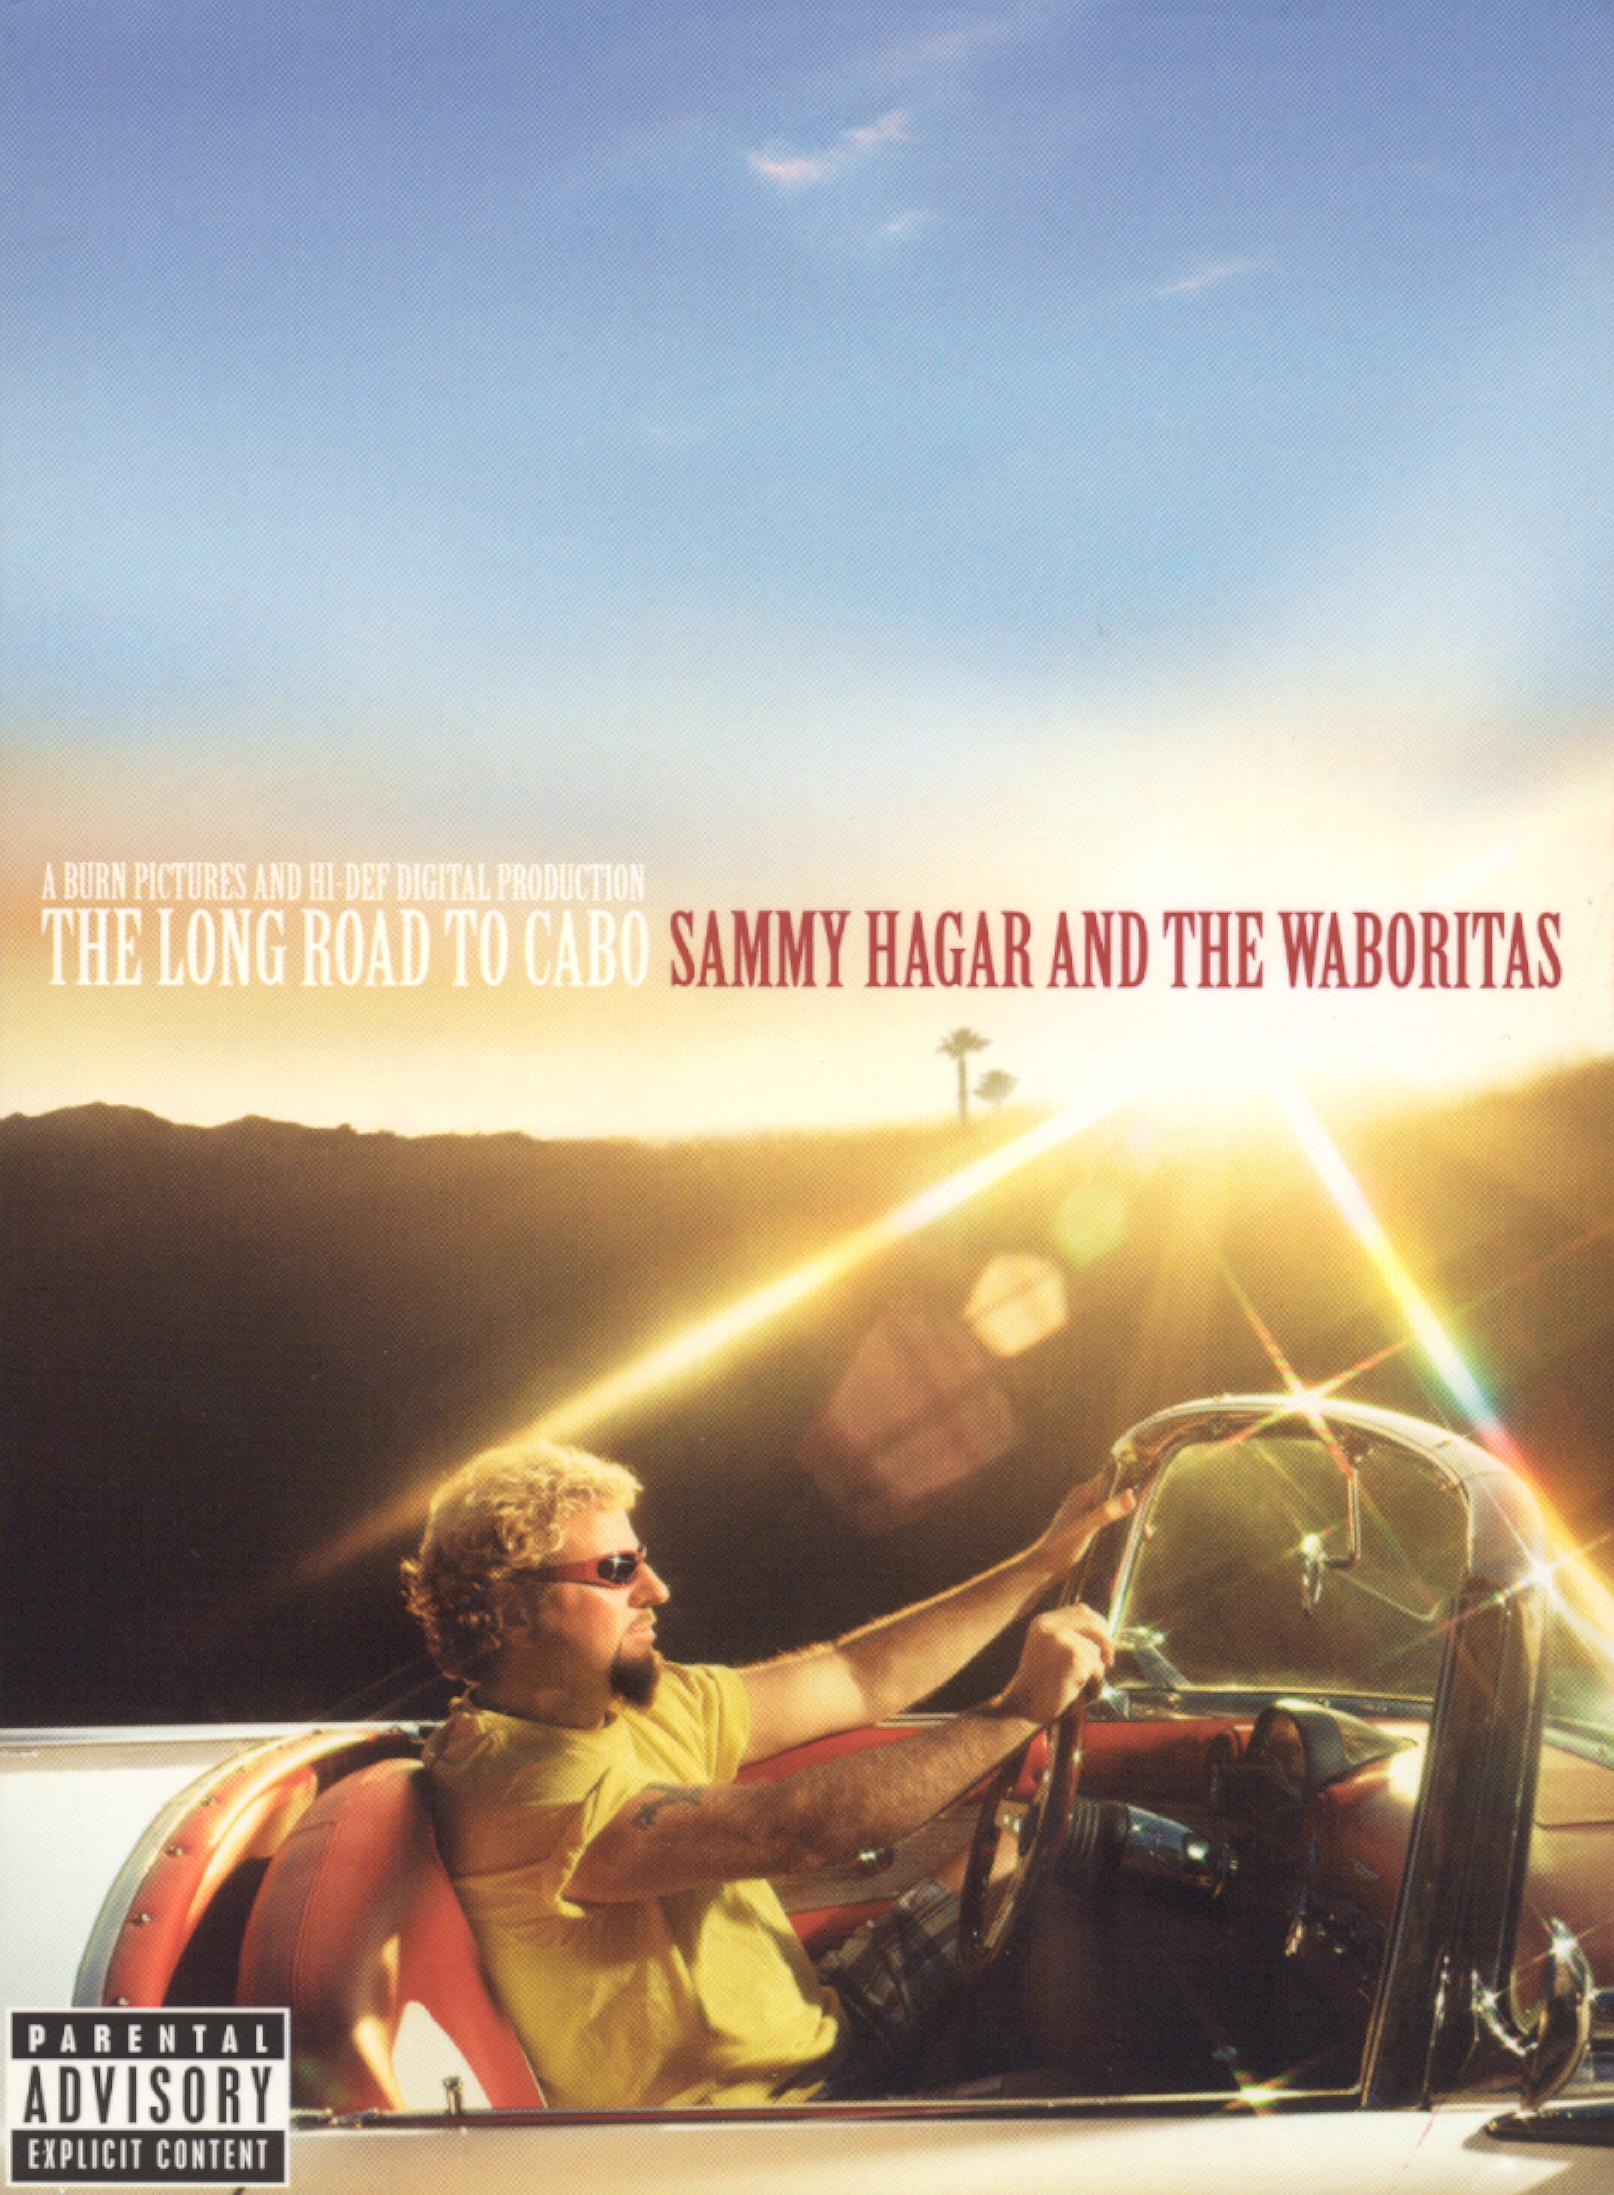 Sammy Hagar and the Waboritas: The Long Road to Cabo